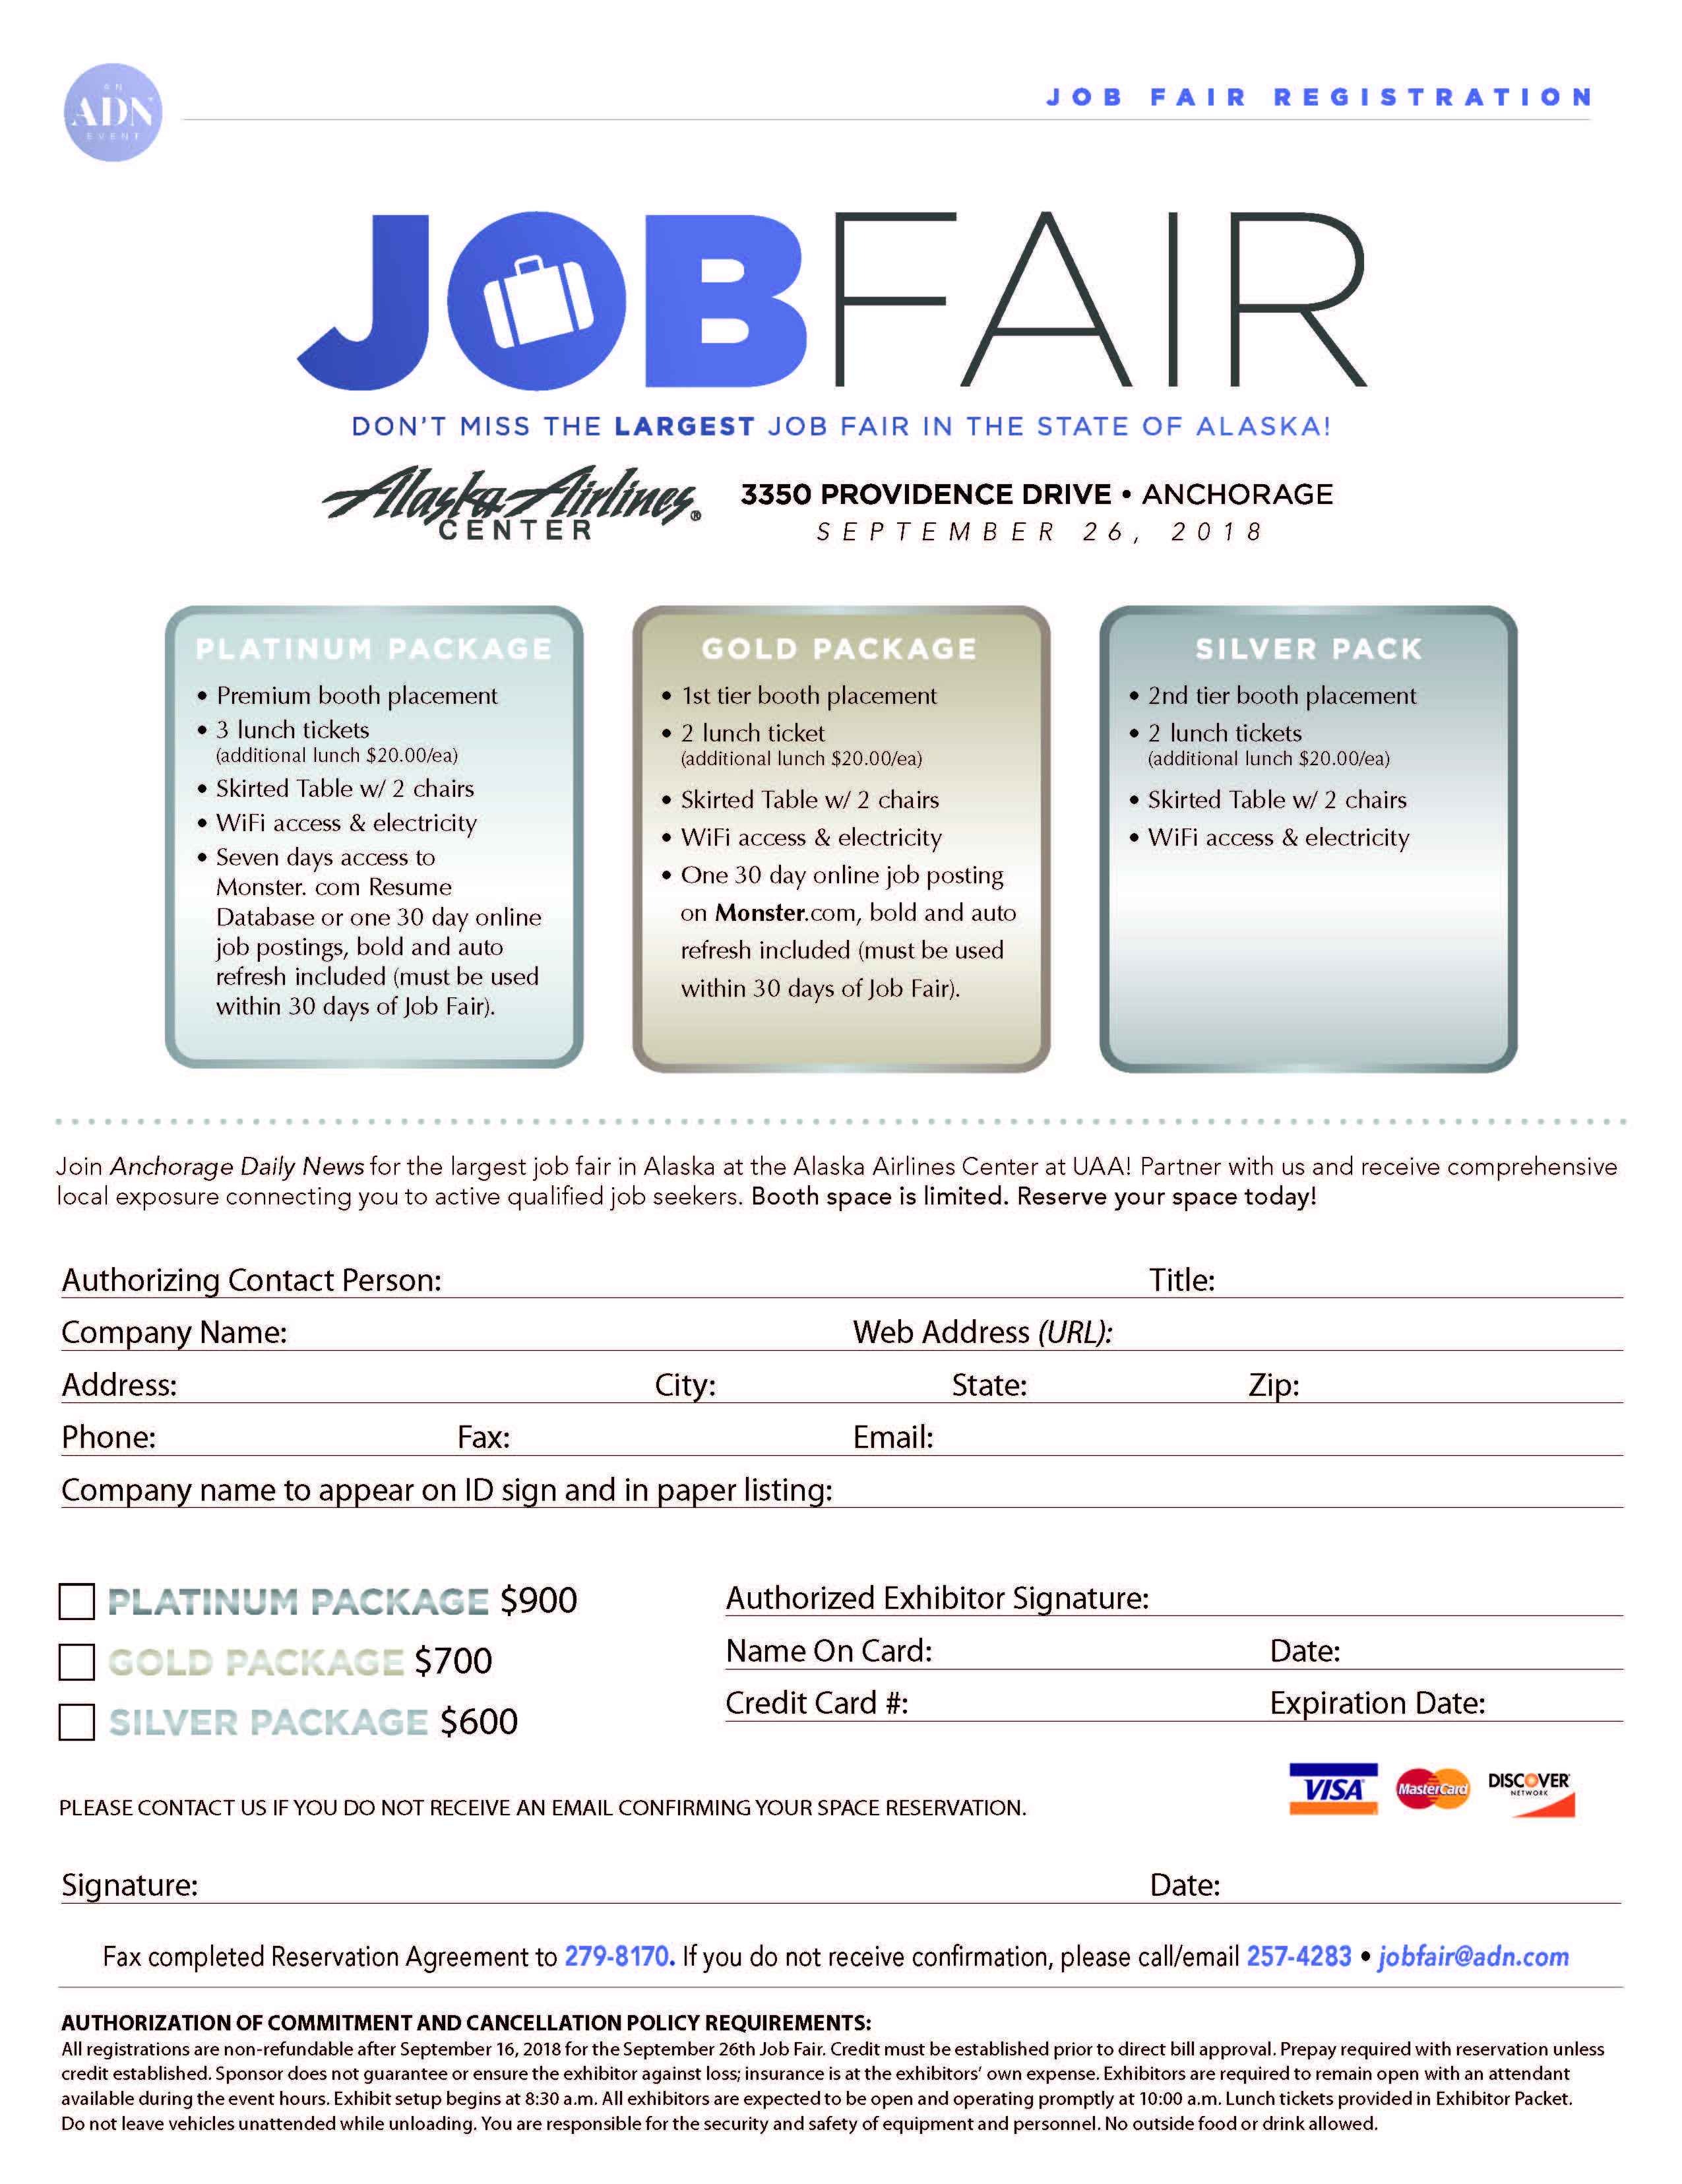 Alaska Airlines Center Job Fair